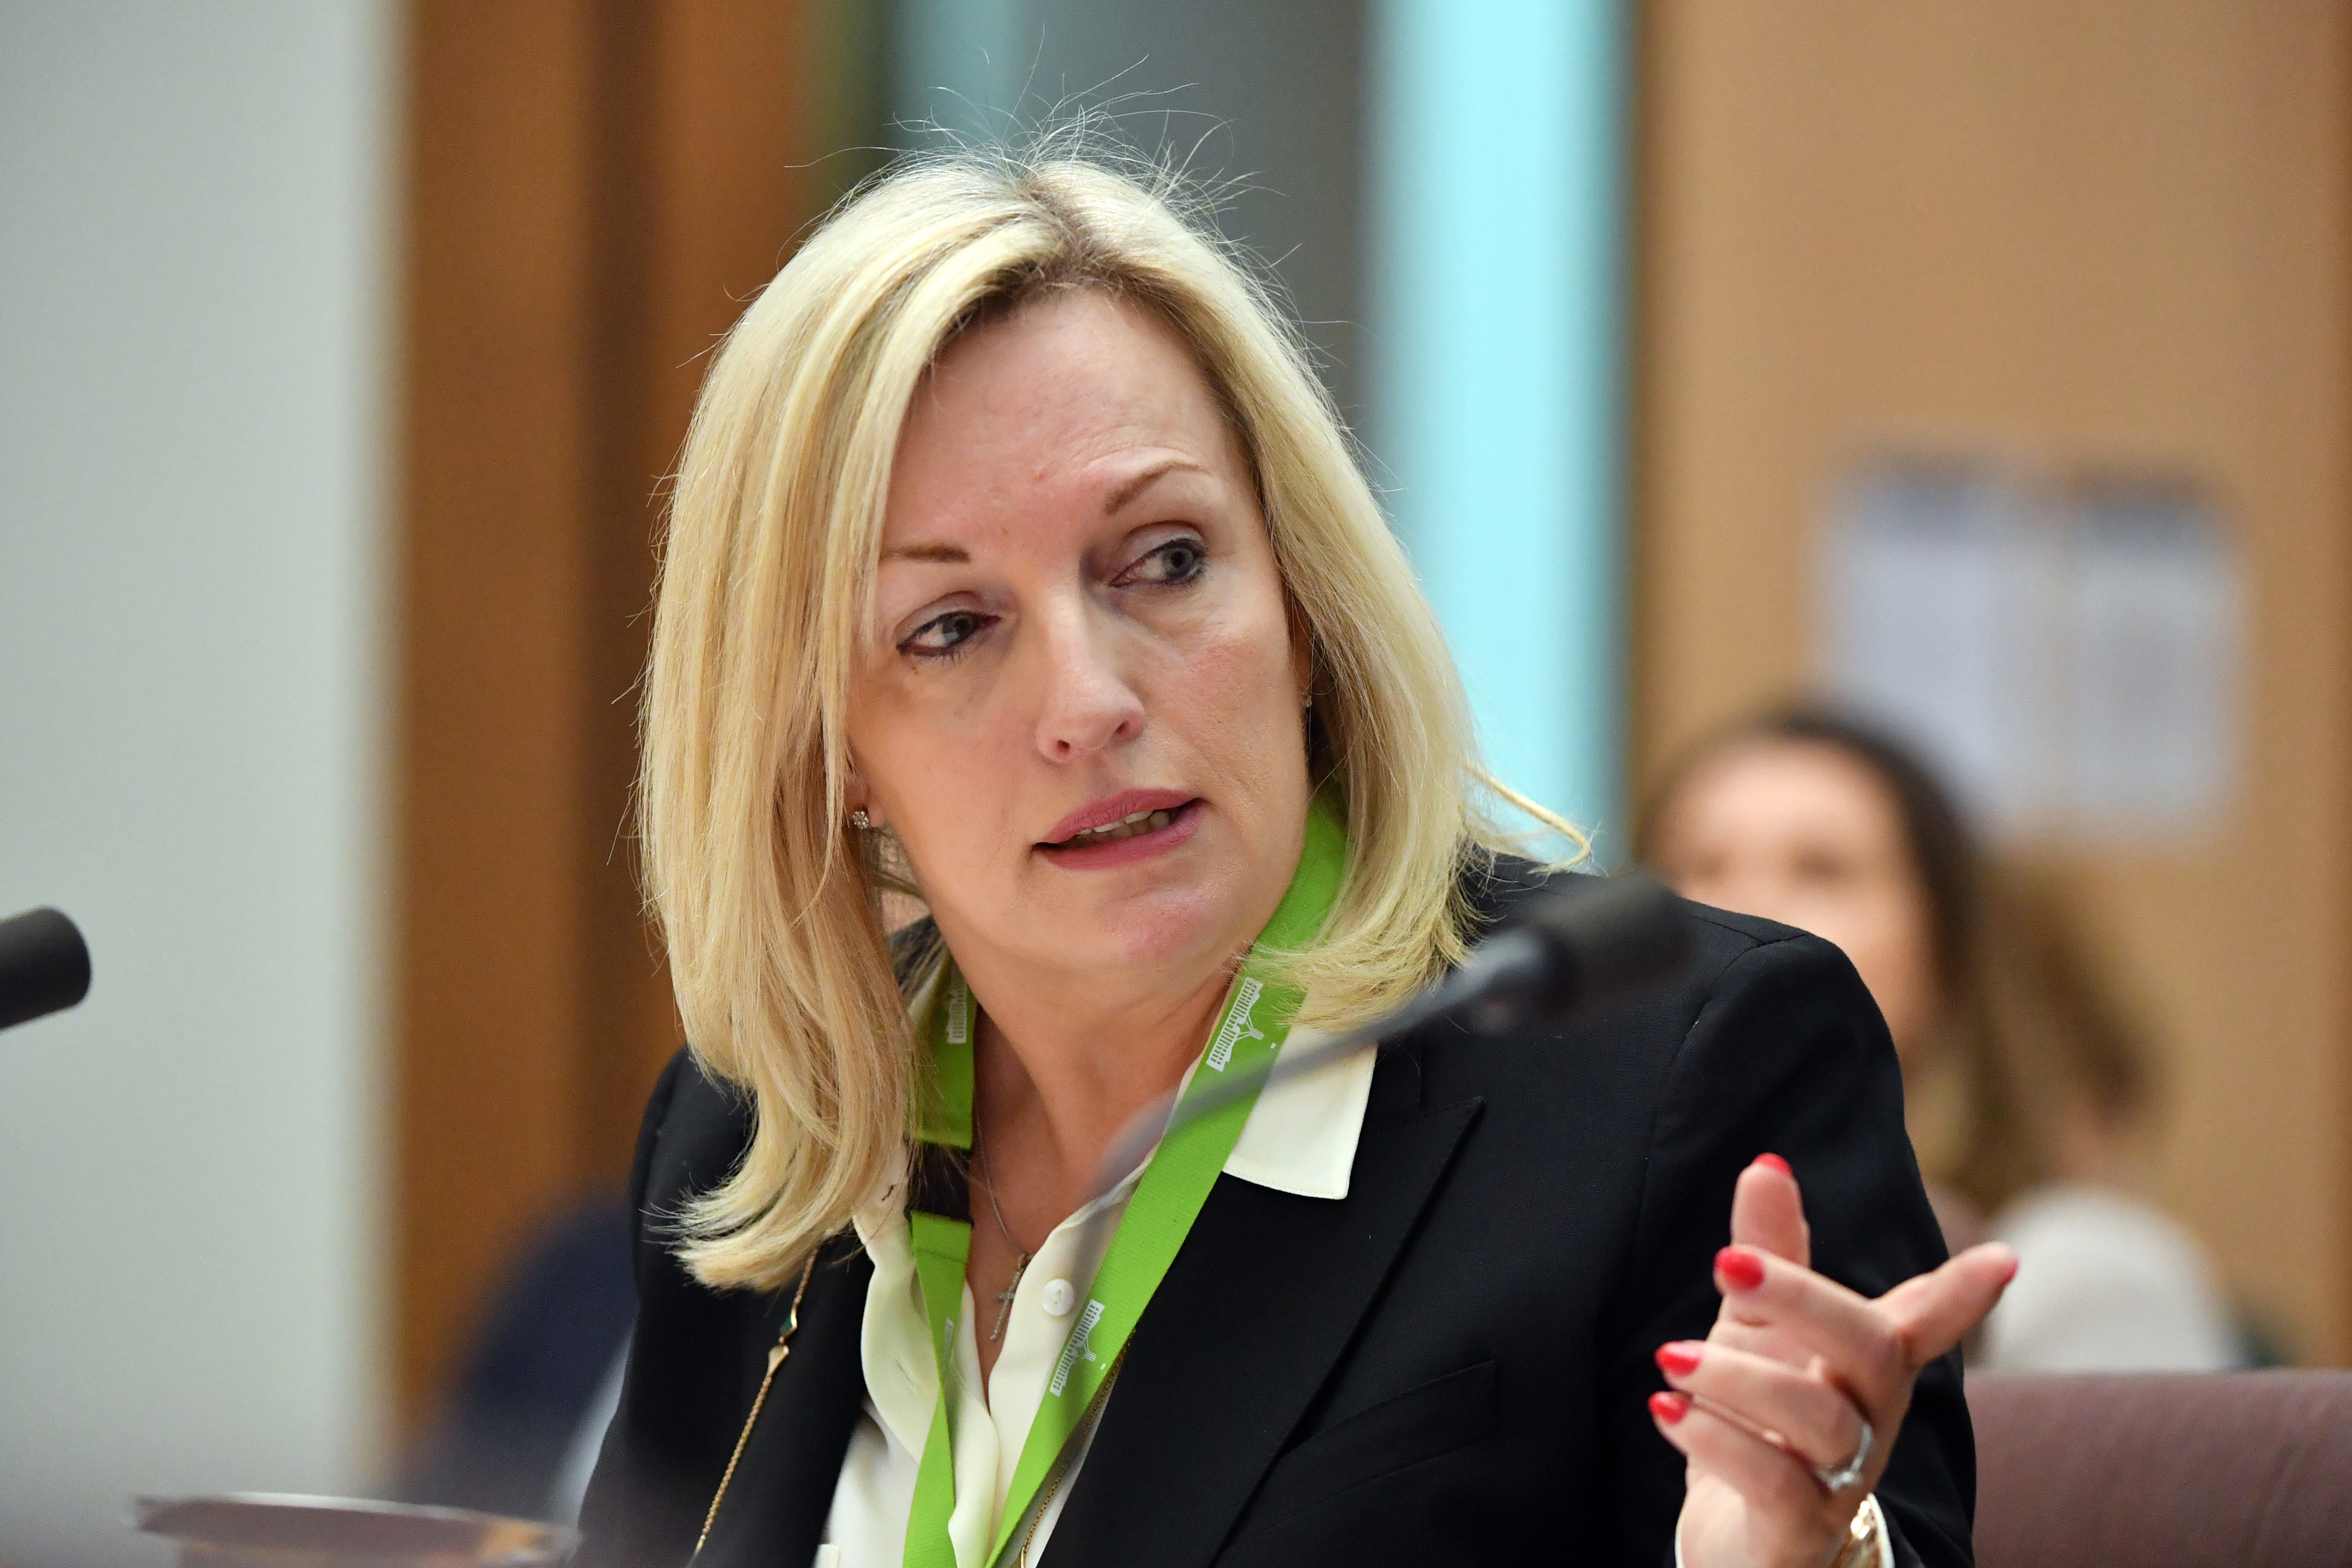 Scott Morrison has brushed off suggestions he threw former Australia Post chief executive Christine Holgate under the bus.